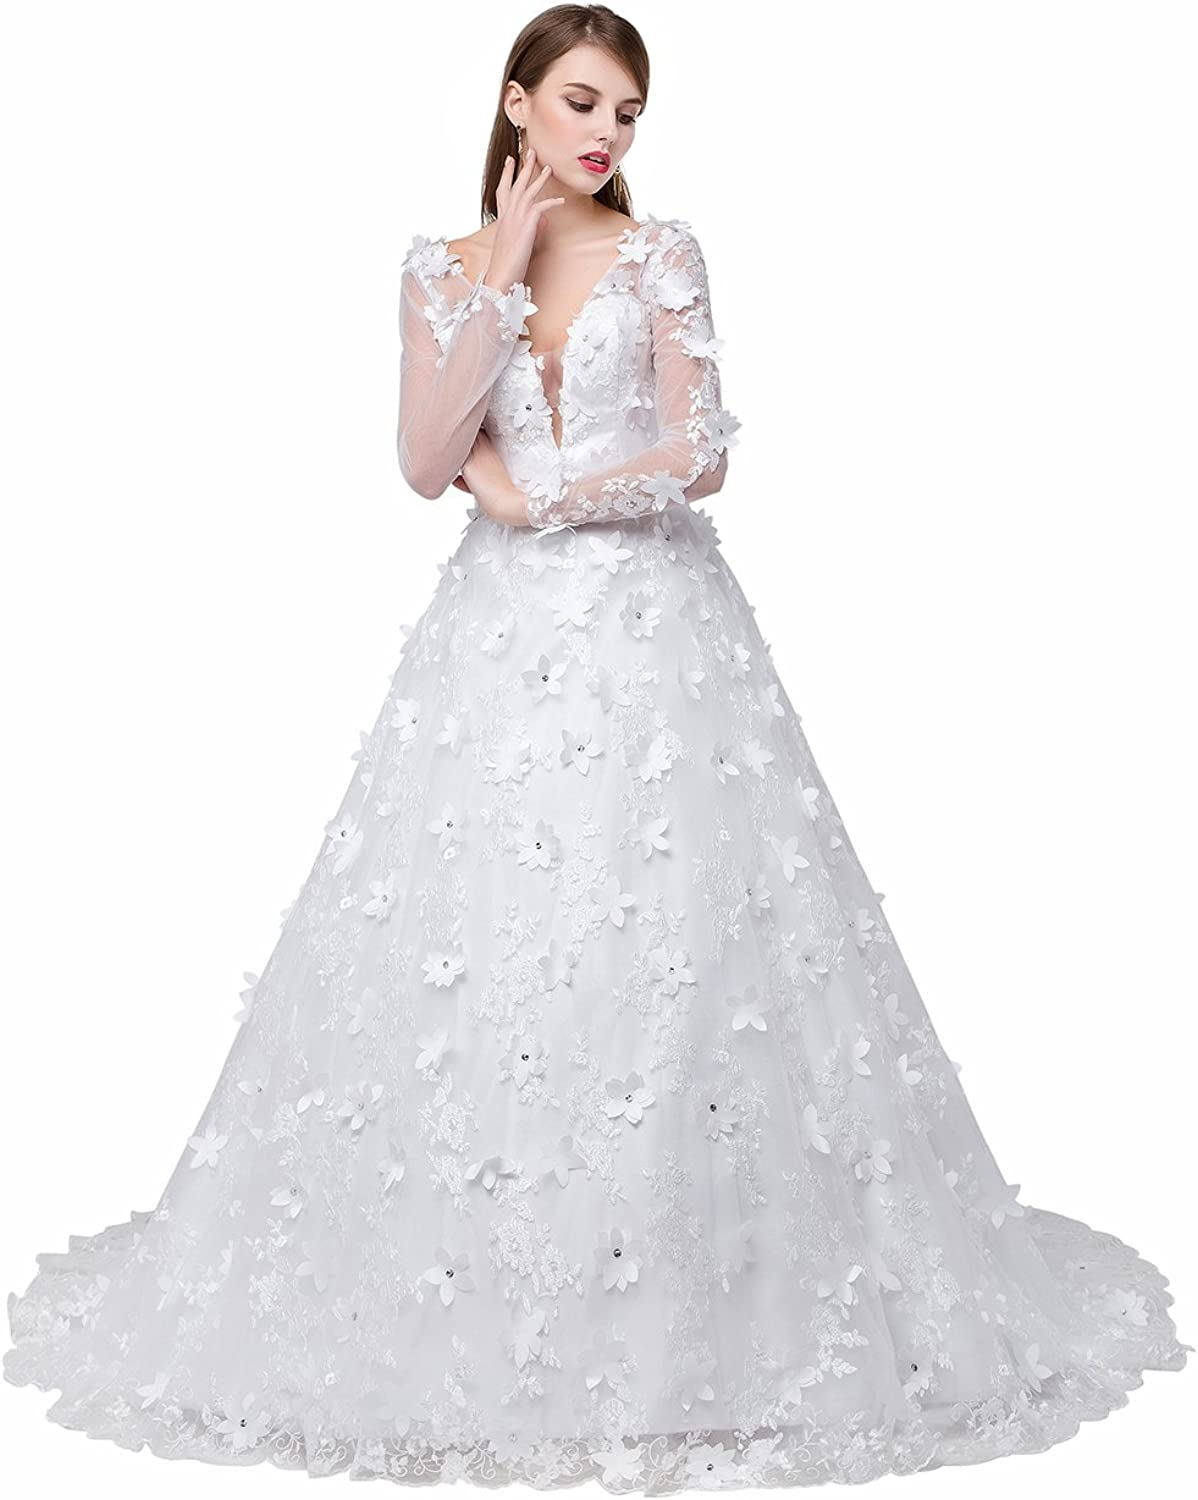 Cdress Women's Flowers VNeck Tulle Widding Dresses Lace Long Bridal Gowns for Bride